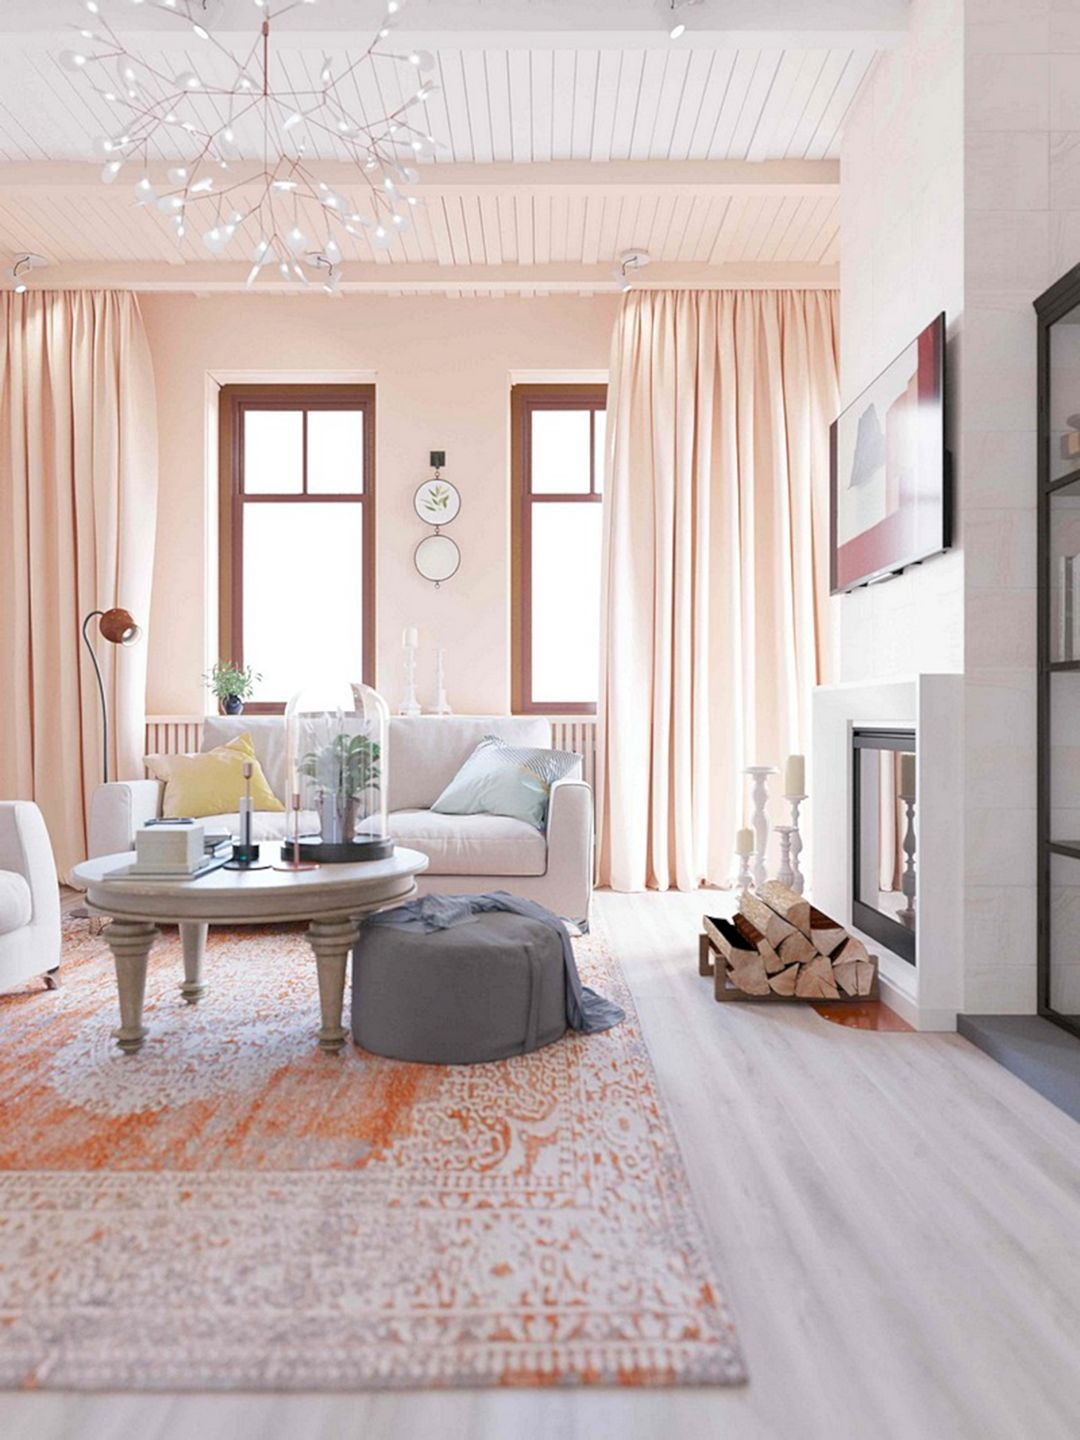 best home therapy with harmony interior design ideas 25 on home interior design ideas id=41755